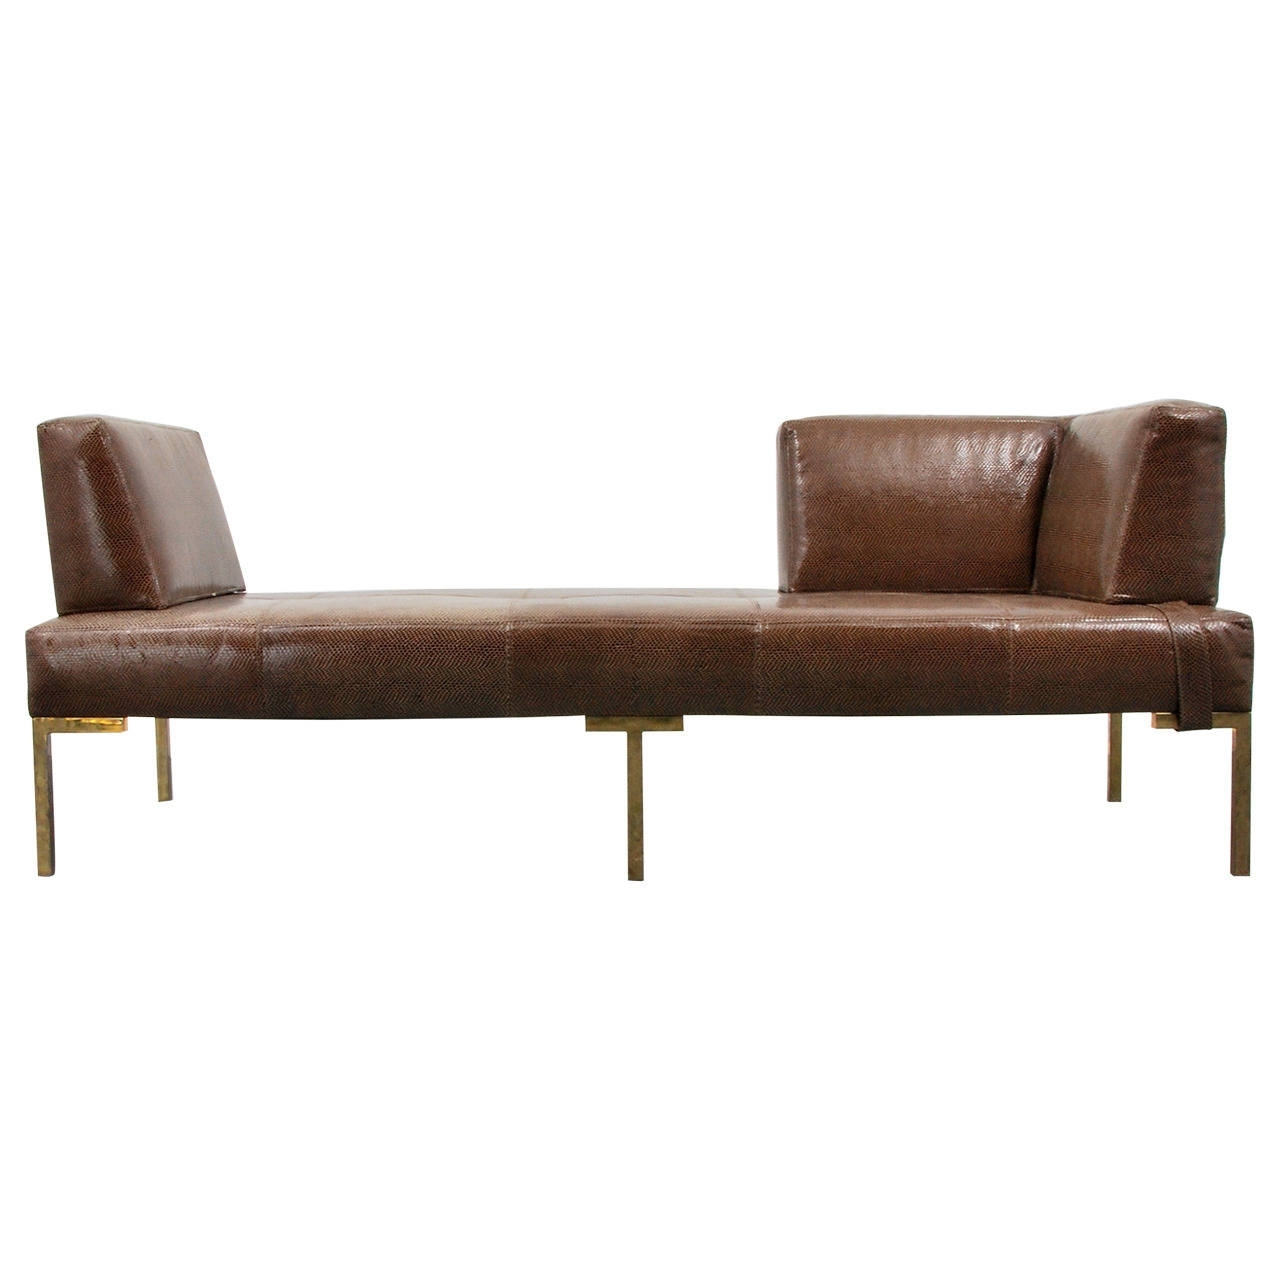 Luigi Gentile Leather Daybeds Or Chaise Lounges, Two Available Throughout Trendy Daybed Chaises (View 11 of 15)